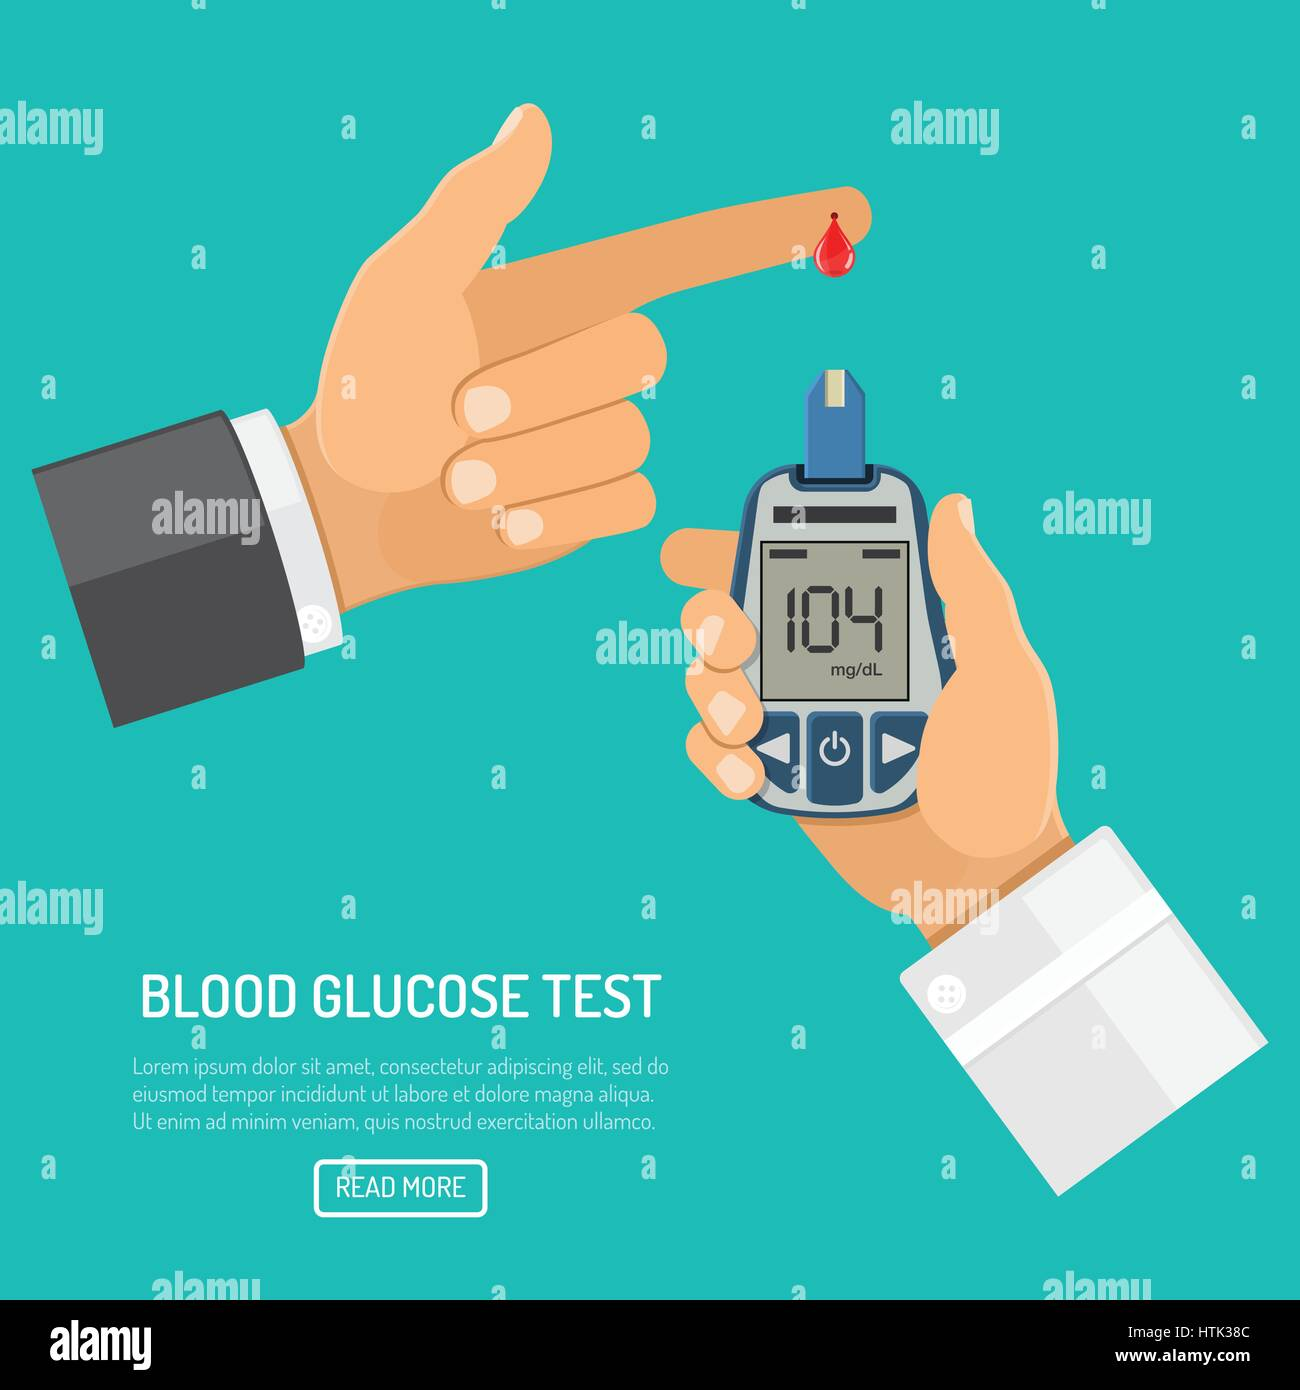 blood glucose meter in hand - Stock Image